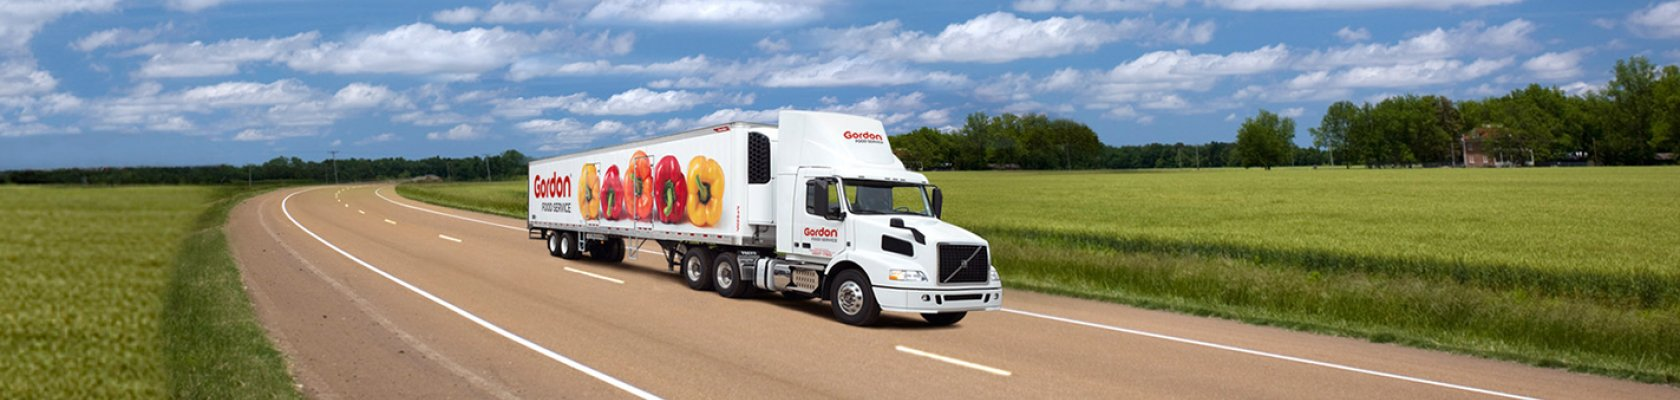 About Us   Gordon Food Service Canada